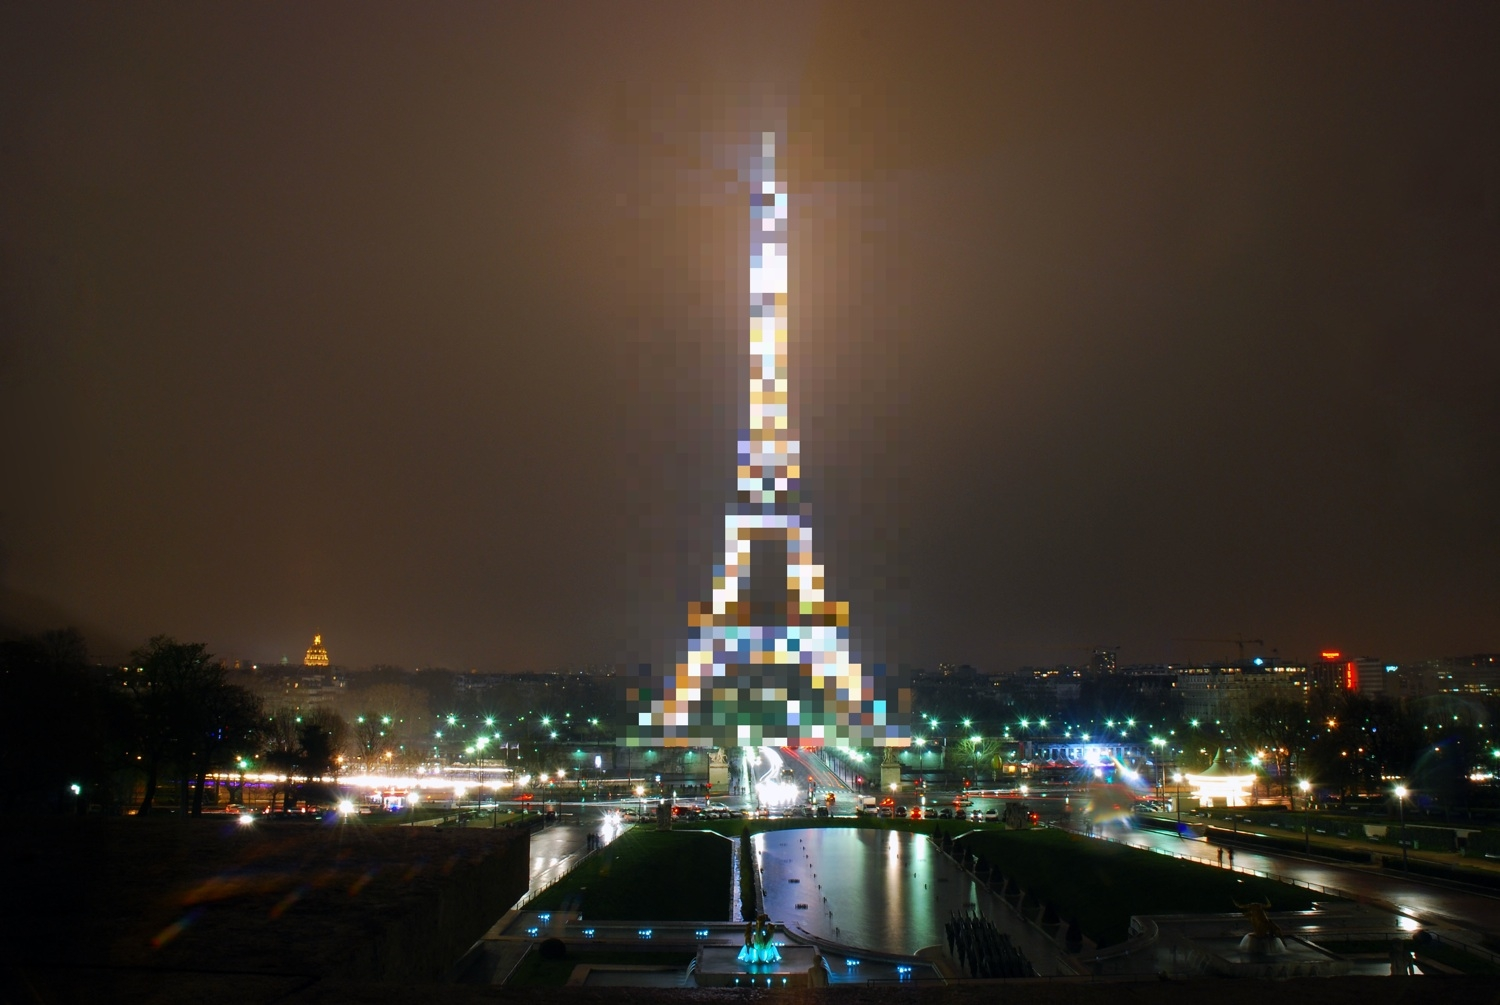 Don't Upload Pictures of The Eiffel Tower To Facebook!